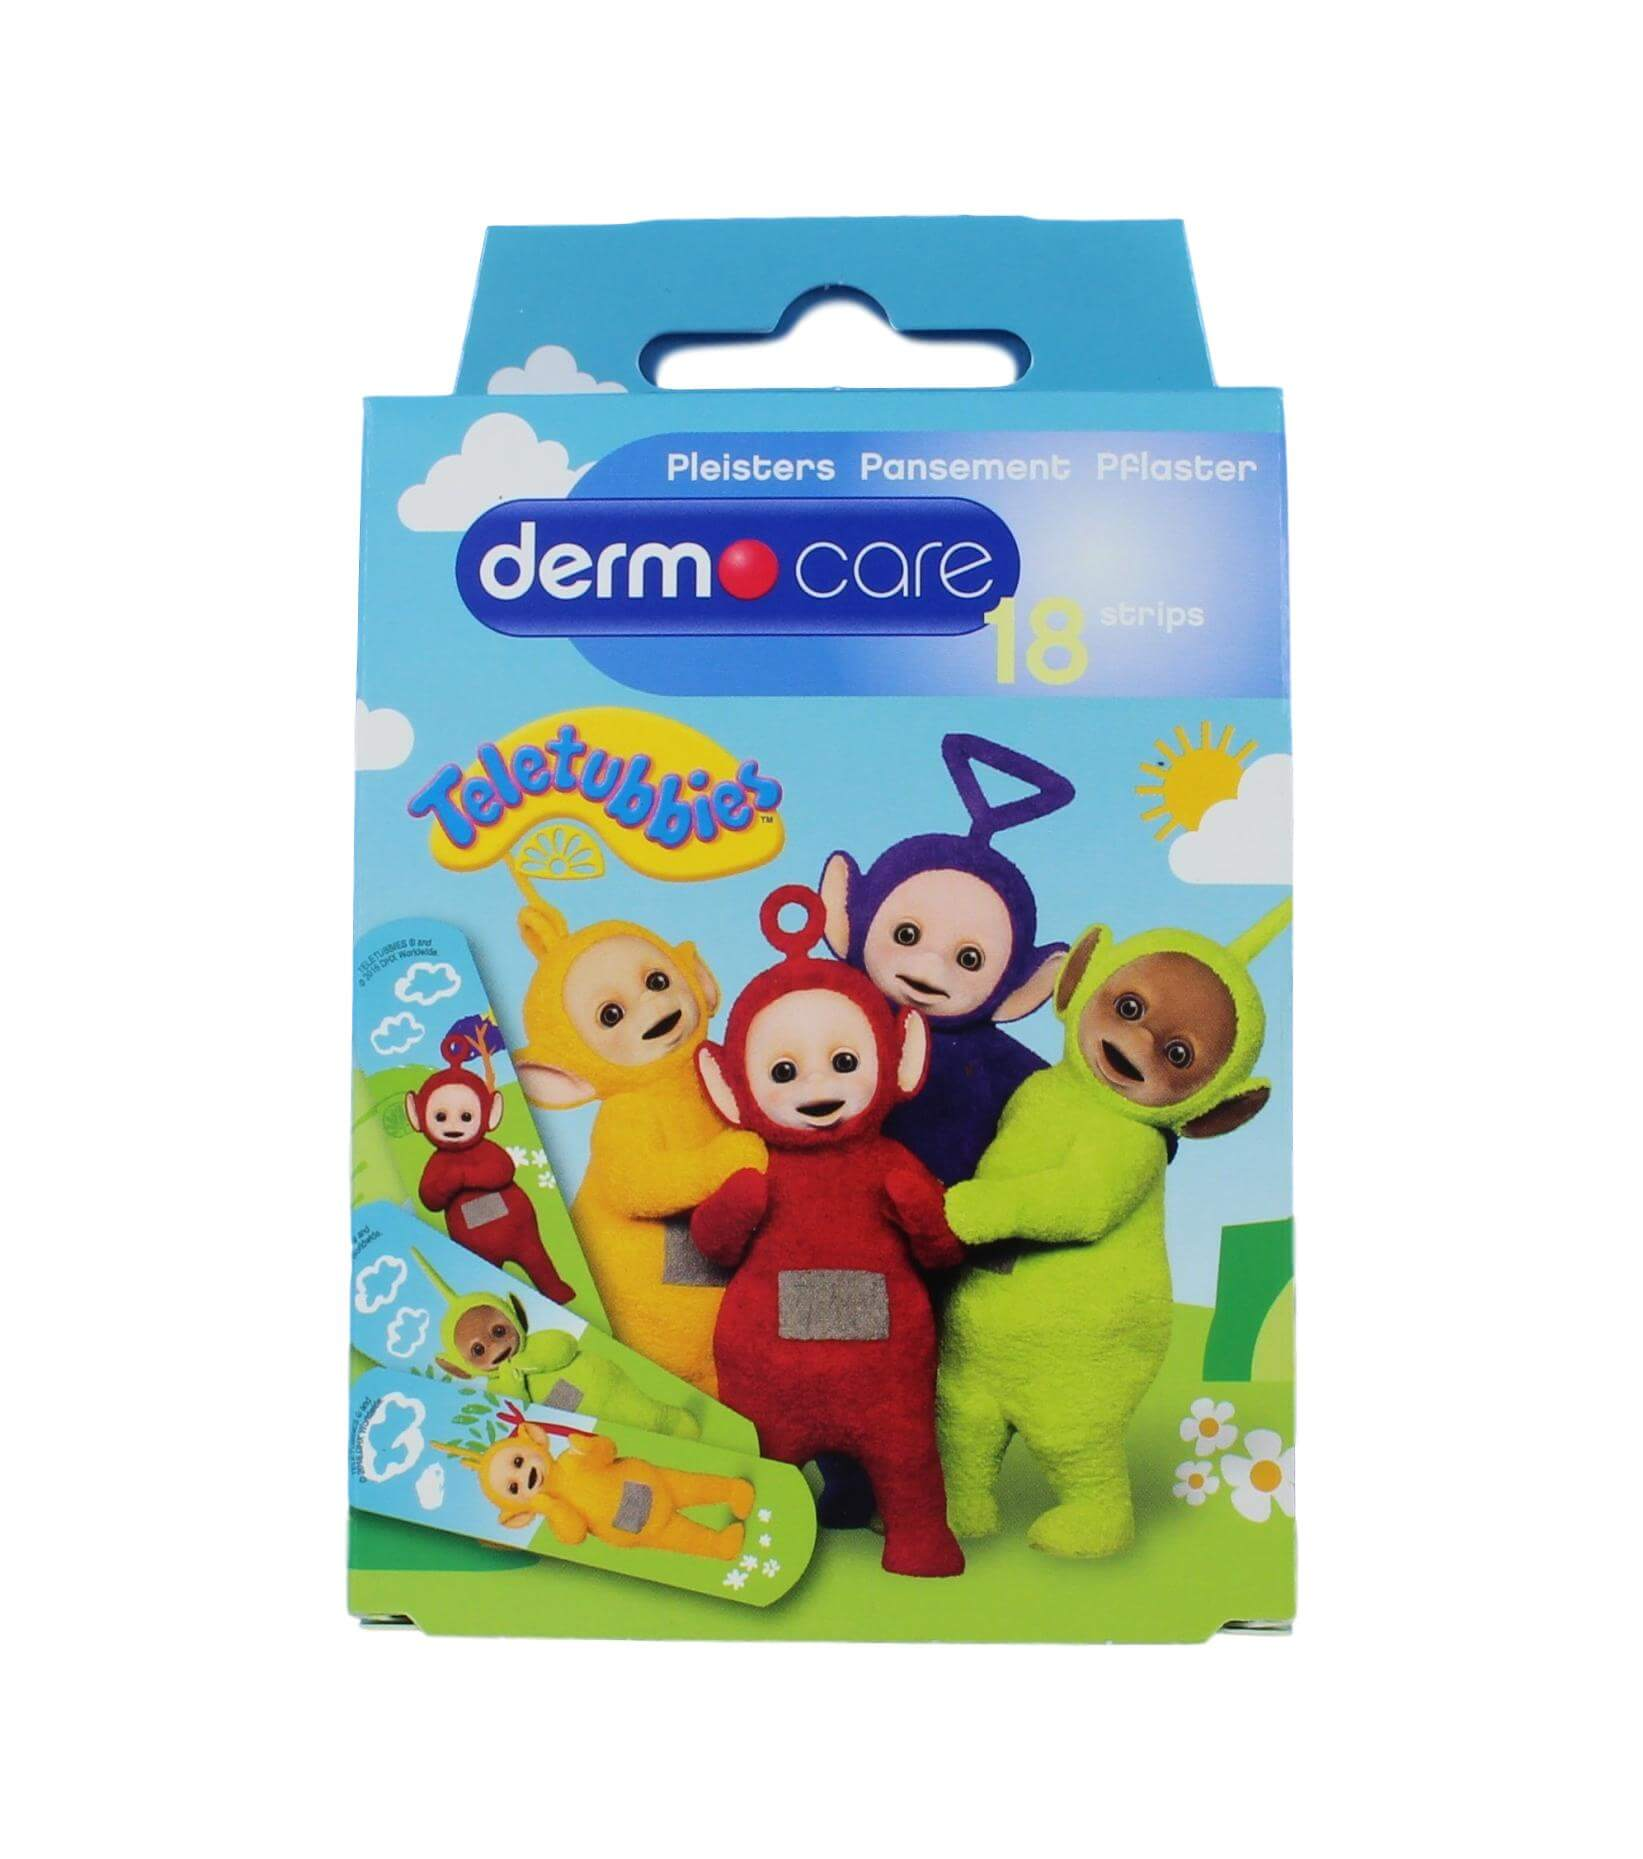 Dermo Care Kinderpleister Teletubbies, 18 Stuks